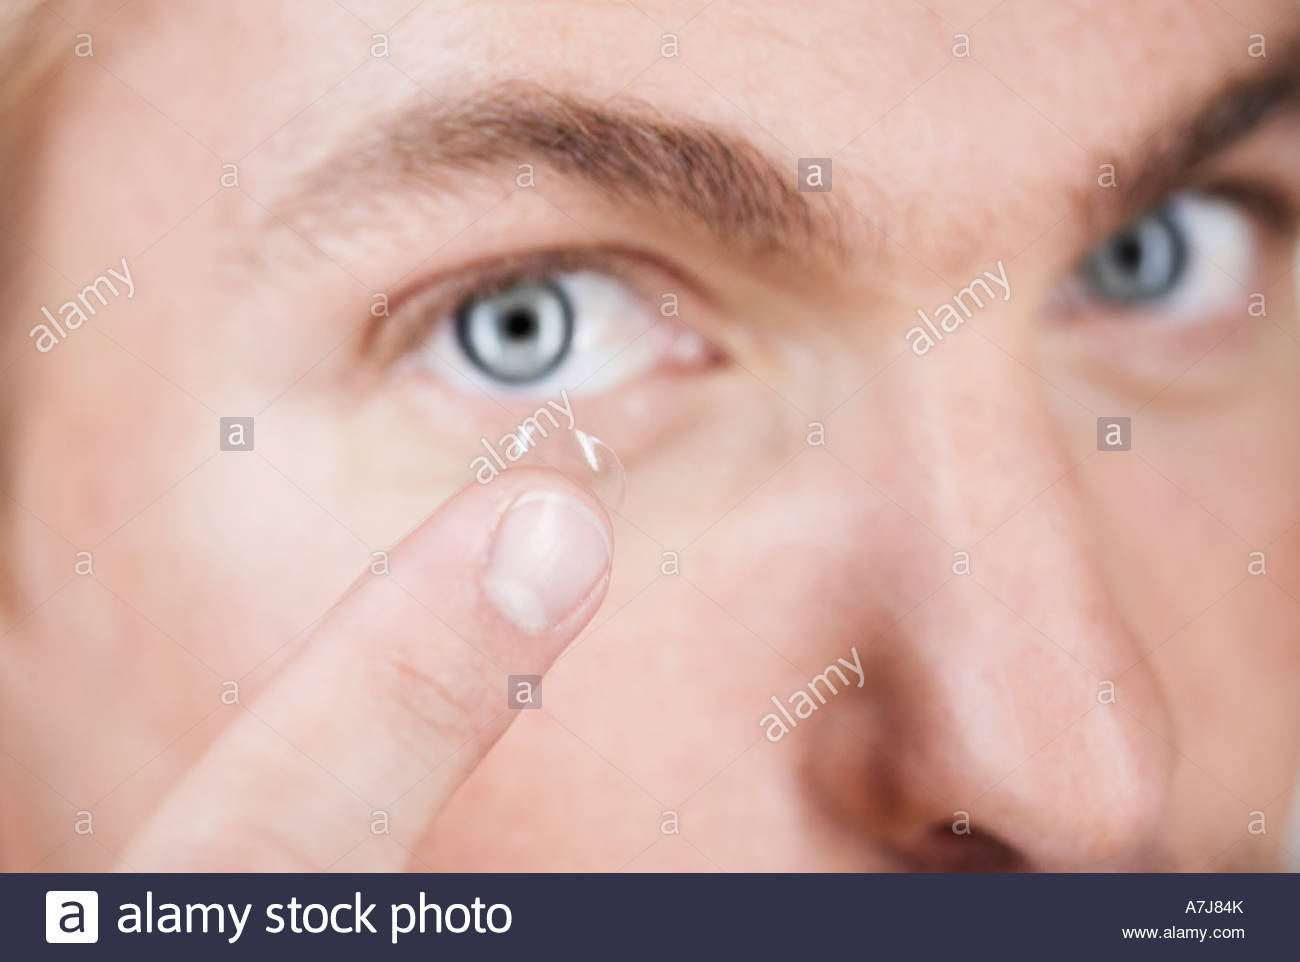 A young man inserting a contact lens - Stock Image